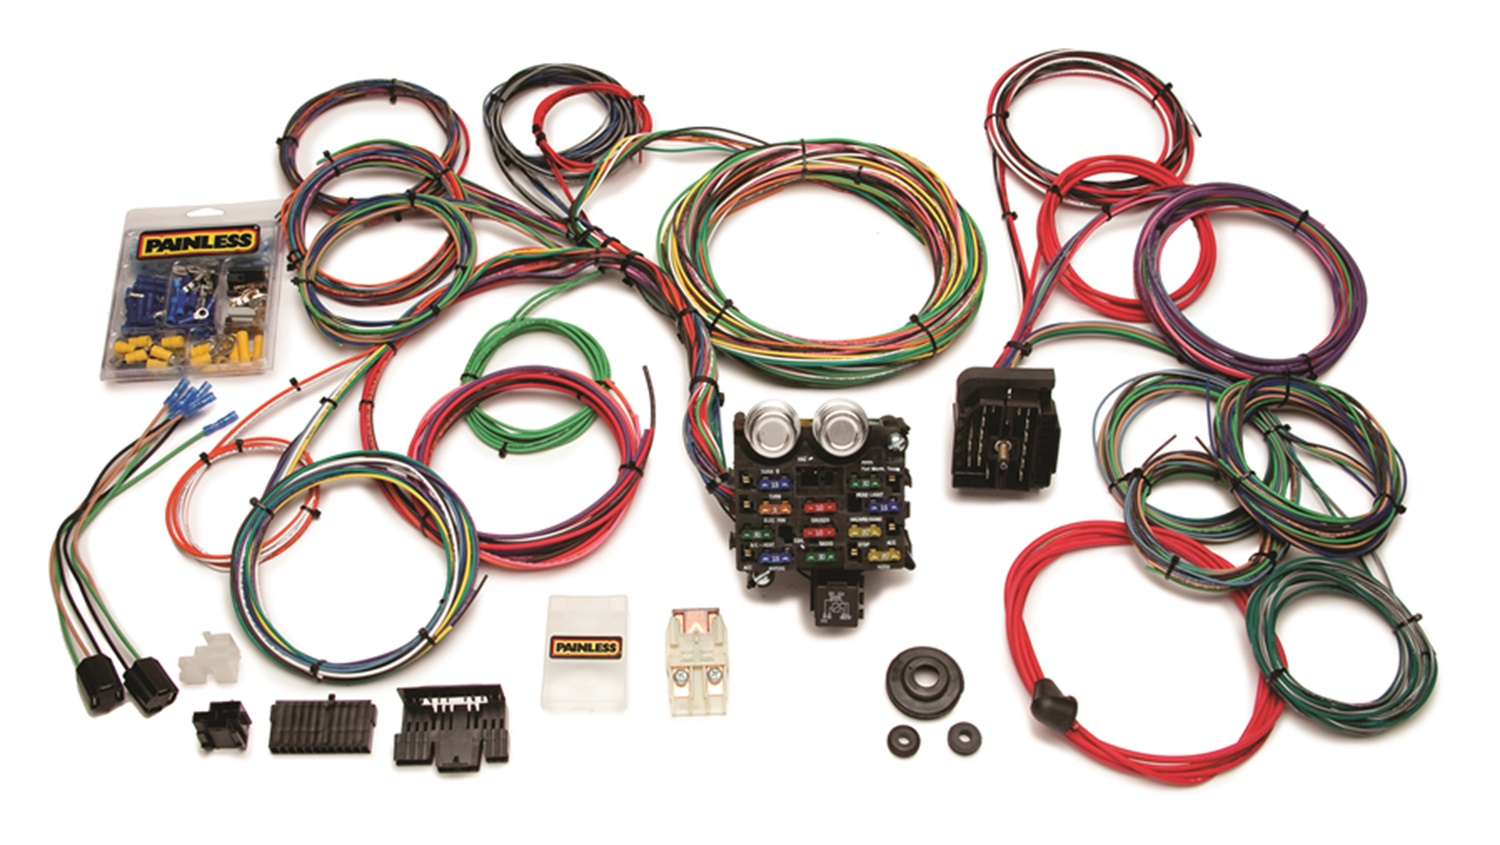 painless 18 circuit wiring harness instructions painless painless wiring harness diagram painless wiring diagrams car on painless 18 circuit wiring harness instructions